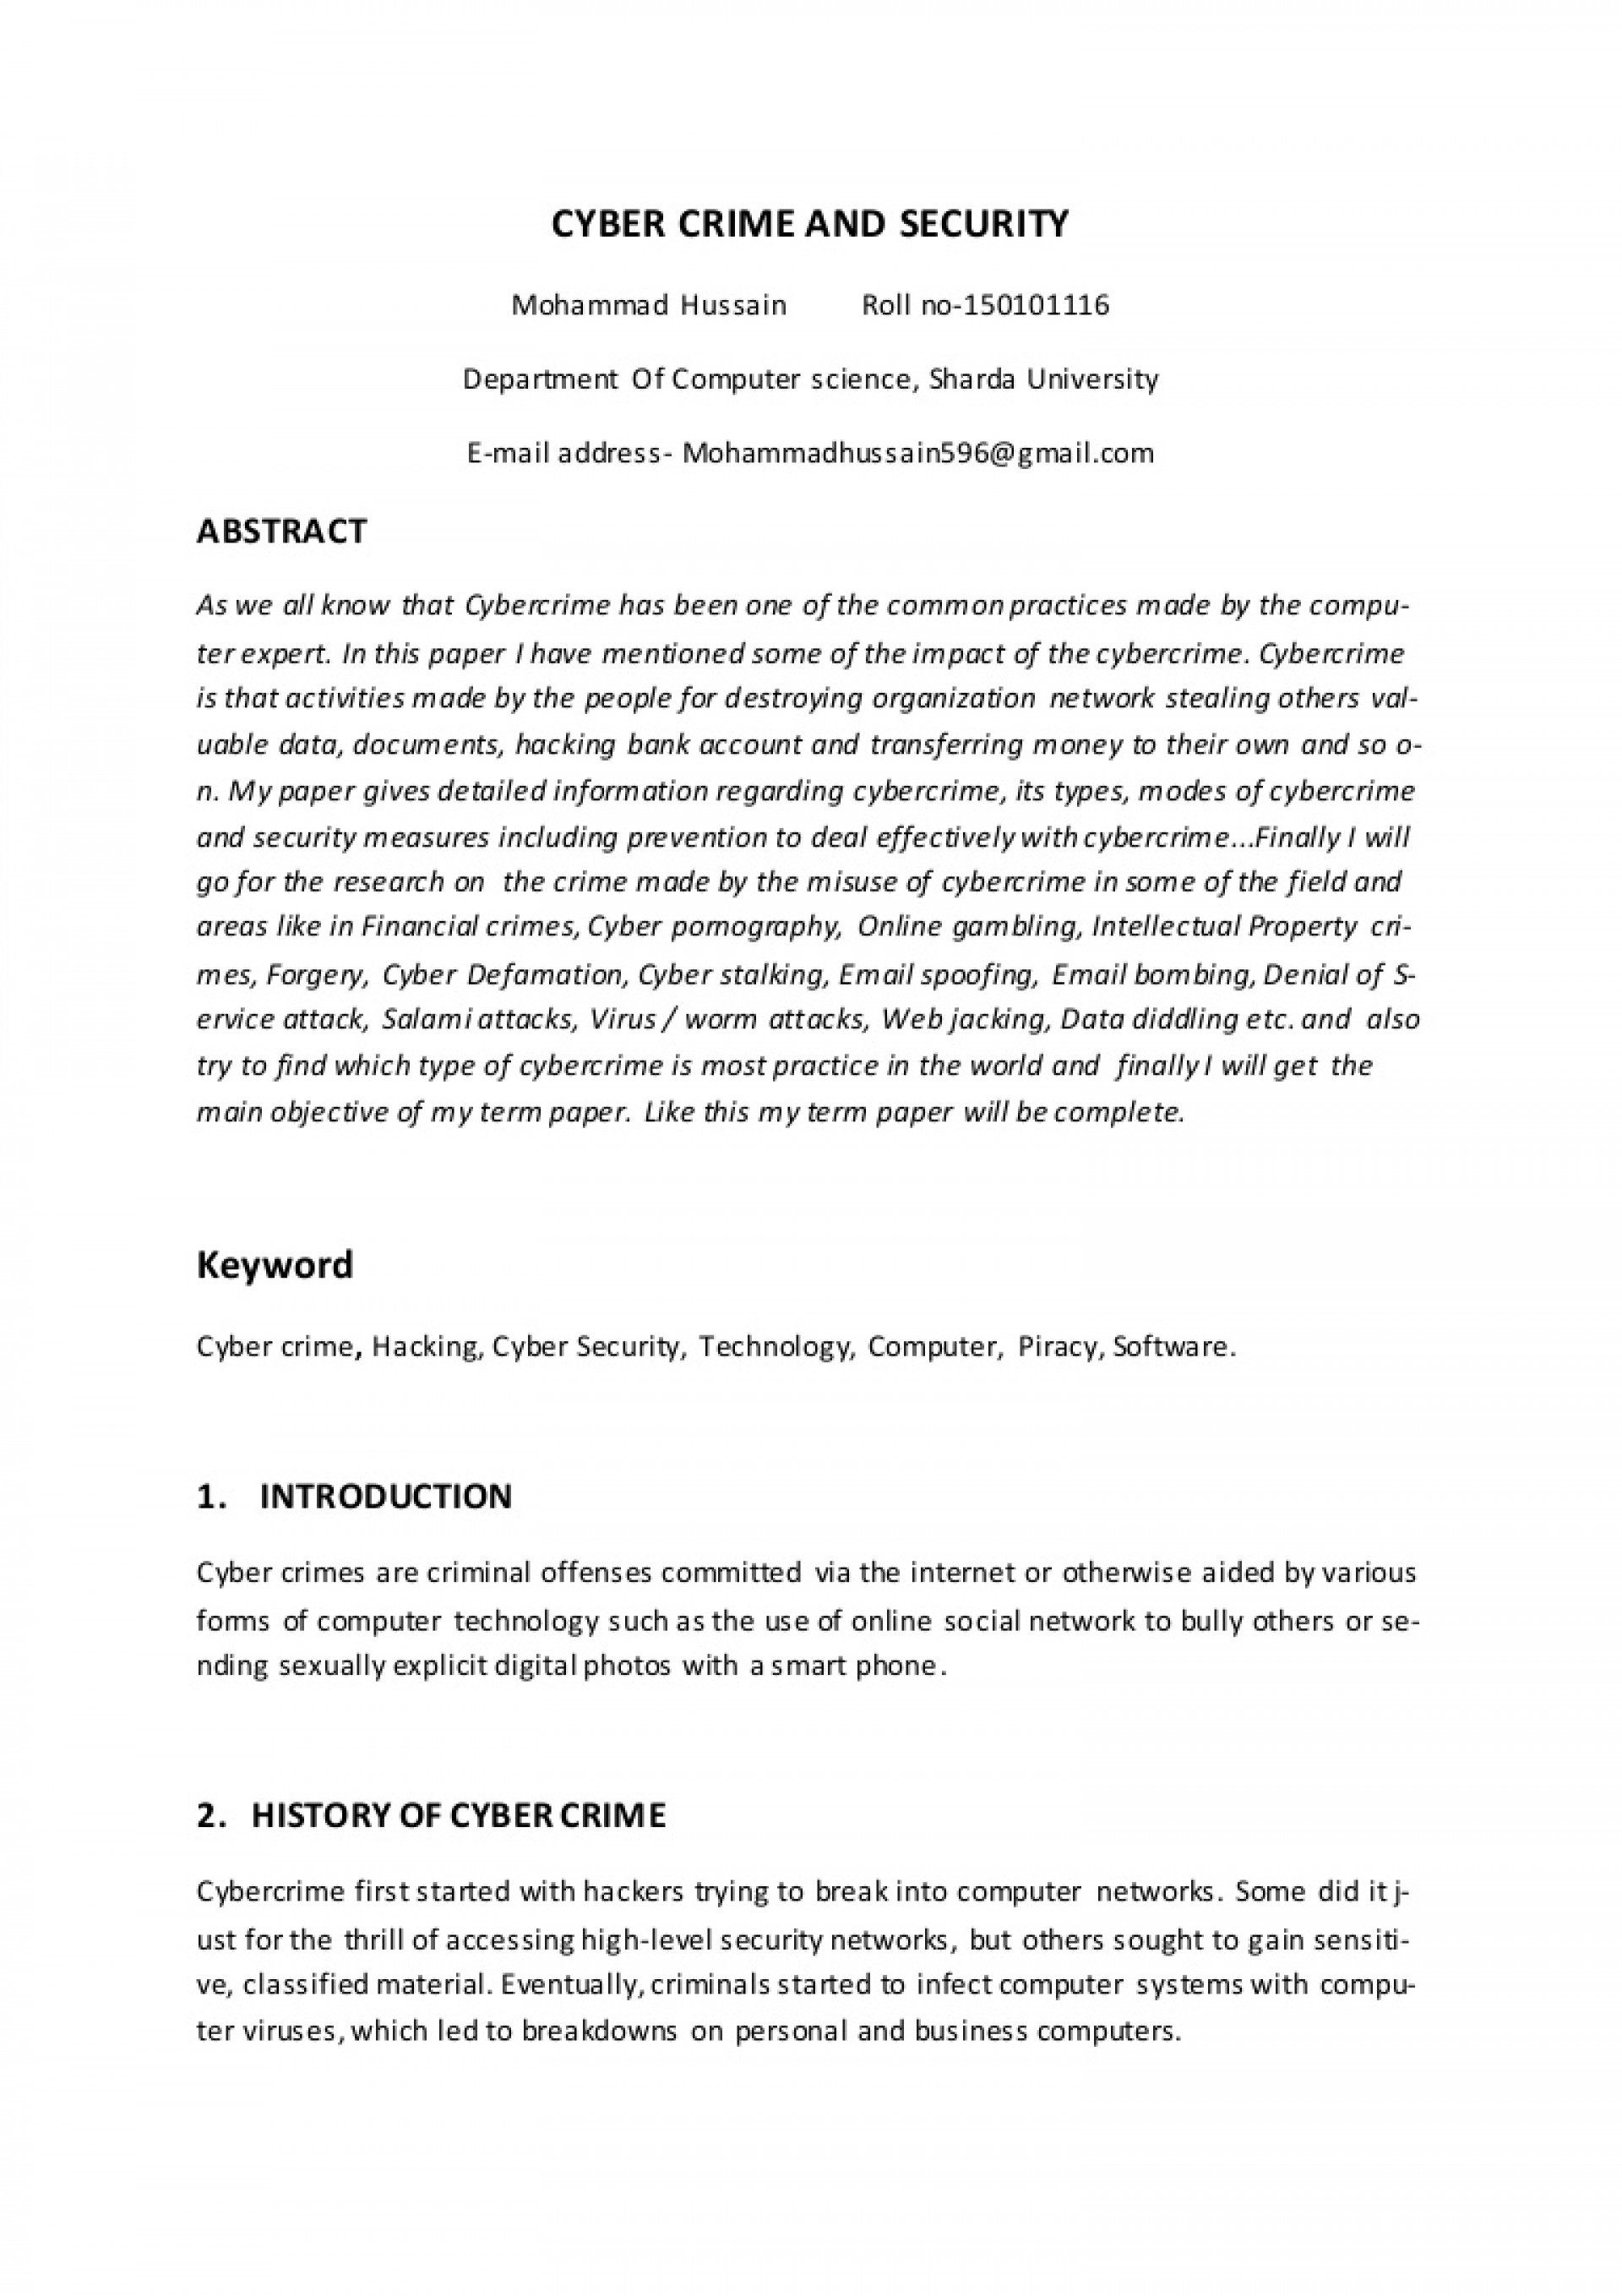 006 Termpaper Thumbnail Research Paper Cyber Security Wondrous Ieee 1920